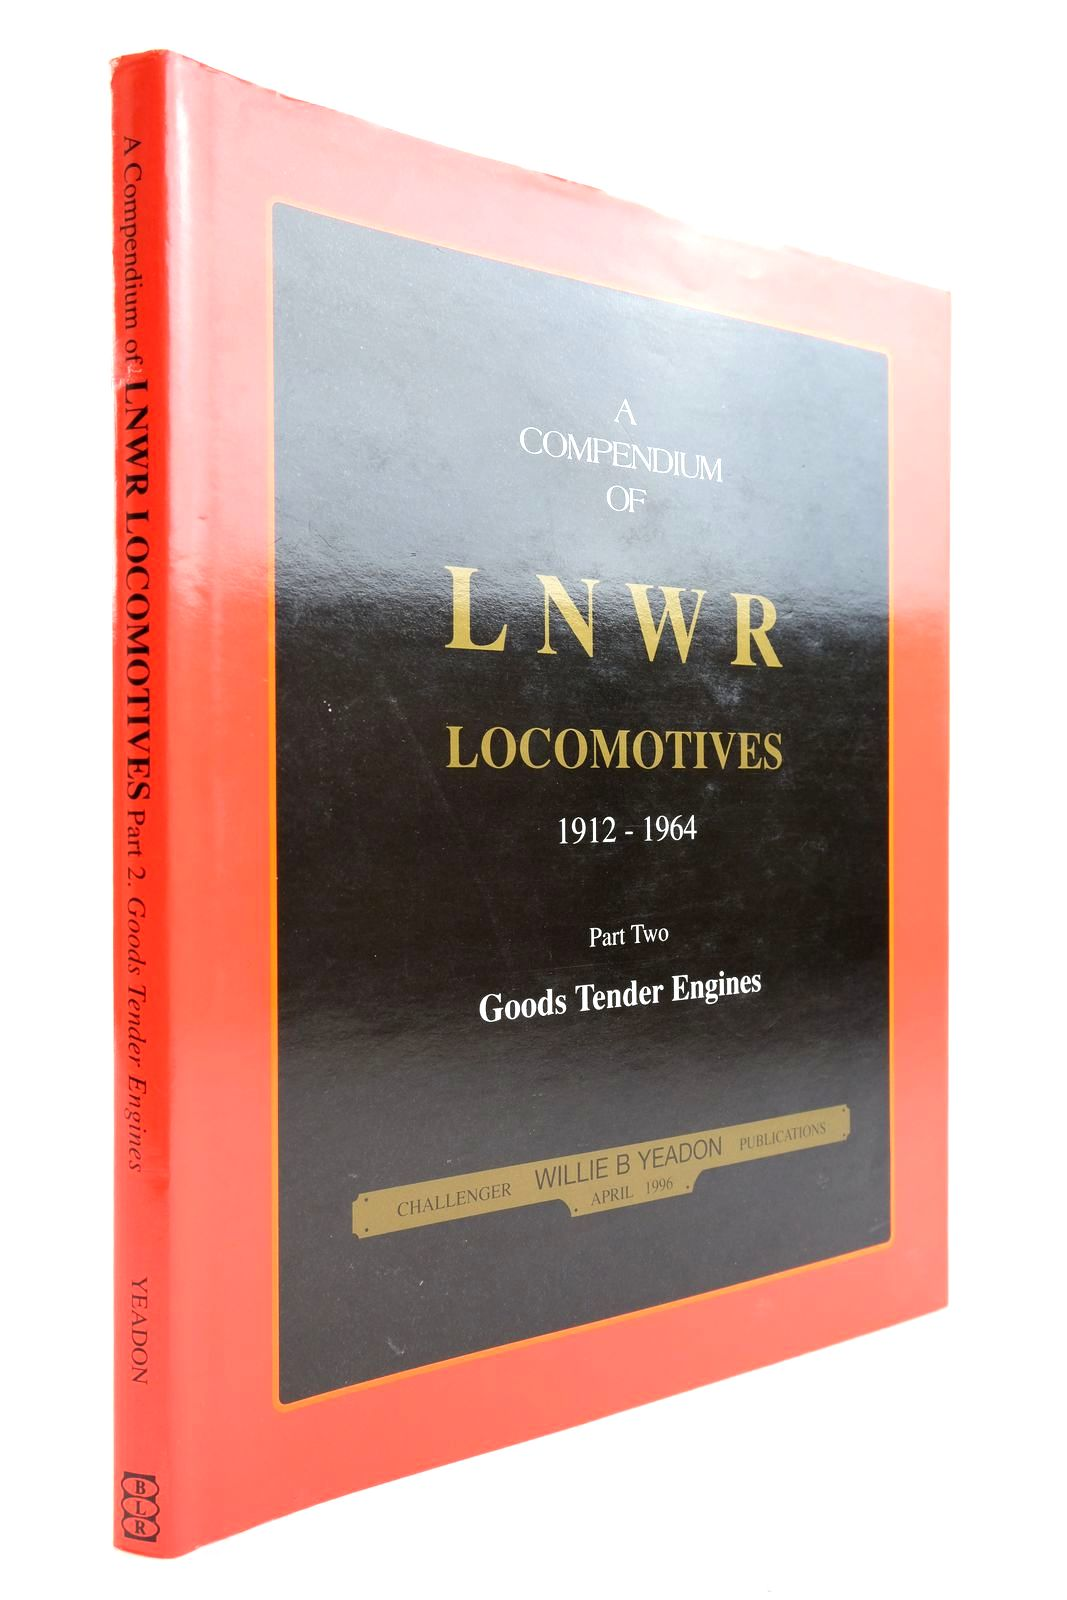 Photo of A COMPENDIUM OF LNWR LOCOMOTIVES 1912-1964 PART TWO GOODS TENDER ENGINES- Stock Number: 2134061